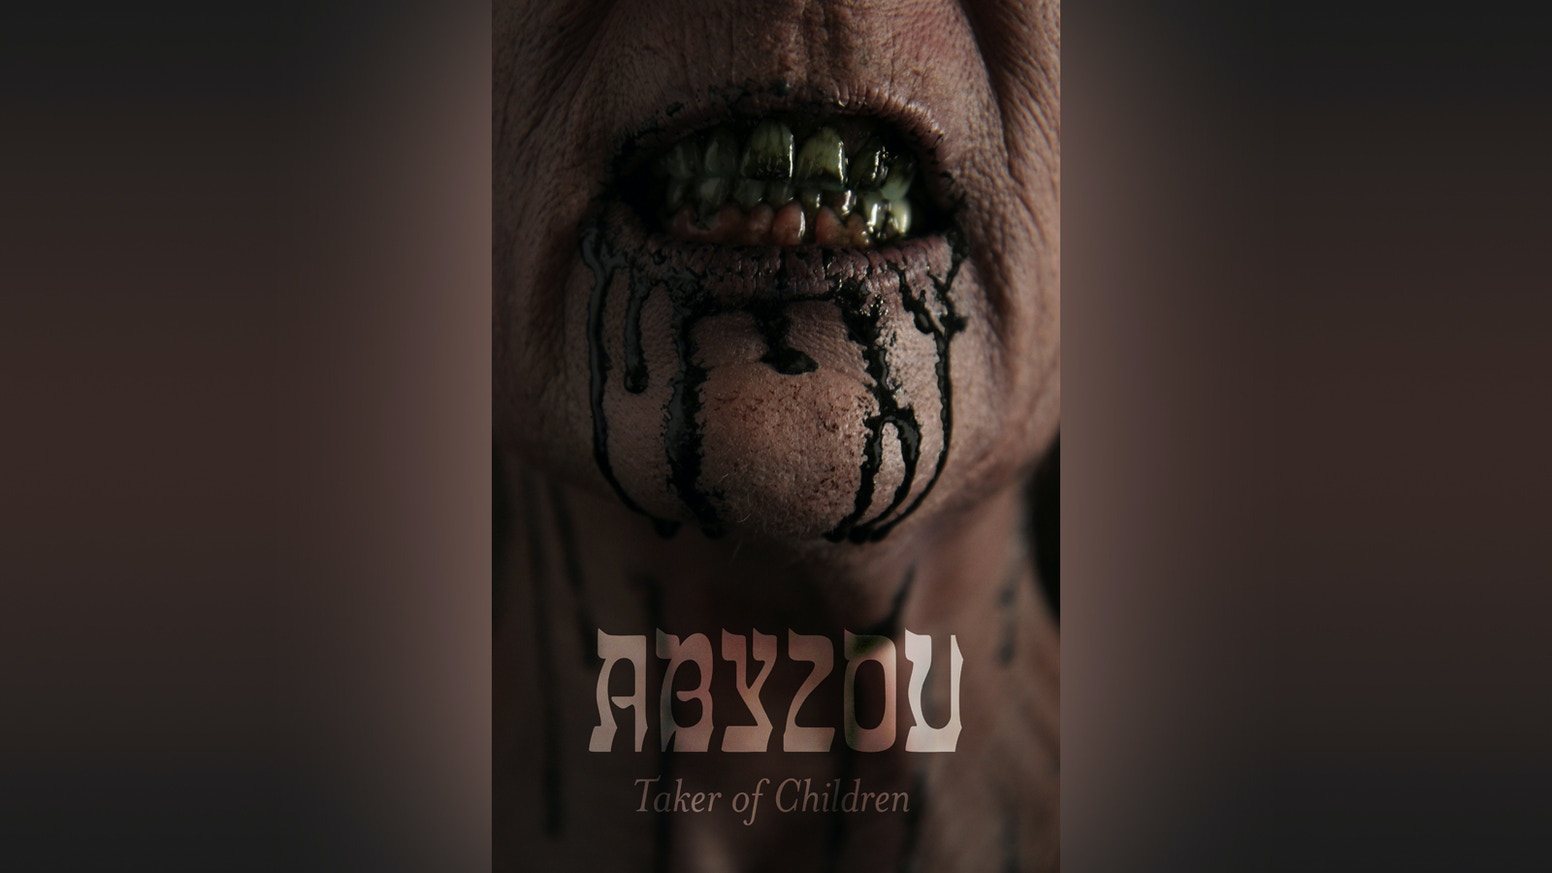 Abyzou: Taker of Children is the fourth independent feature film from writer-director Jordan Pacheco.